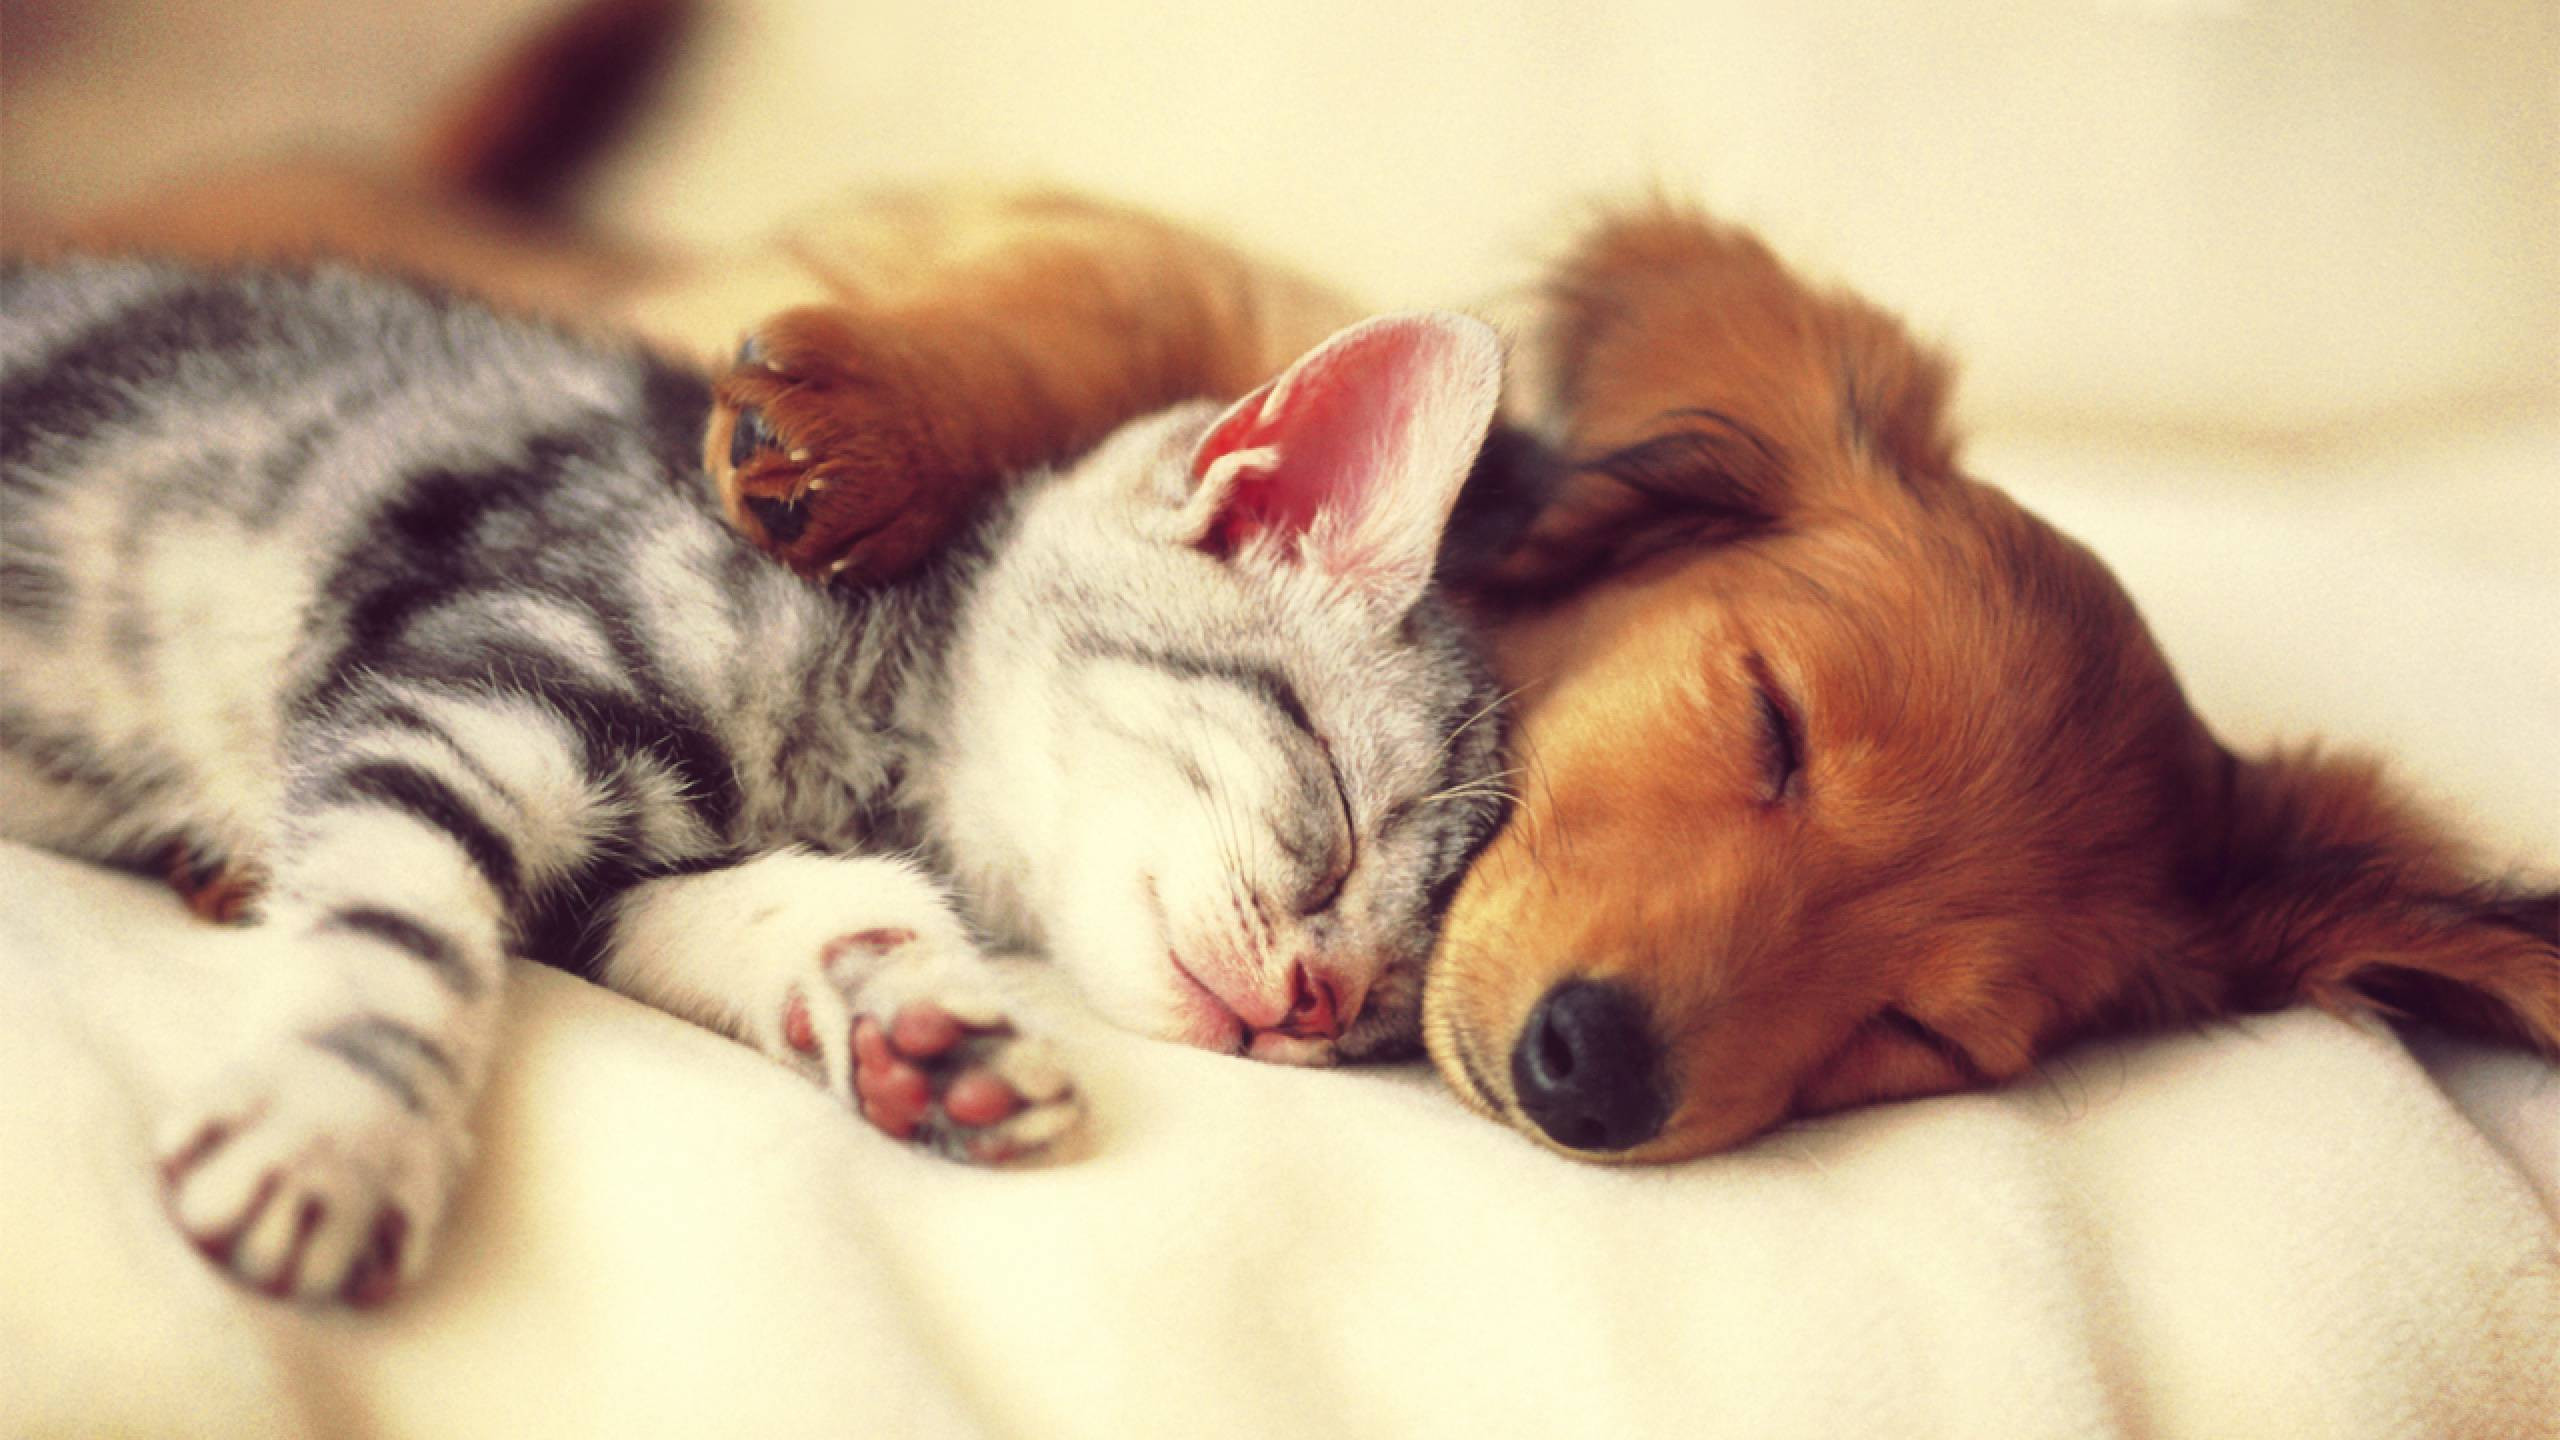 Wallpaper Of Cute Dogs And Cats Cute Dog And Cat Wallpaper | Pixelstalk …